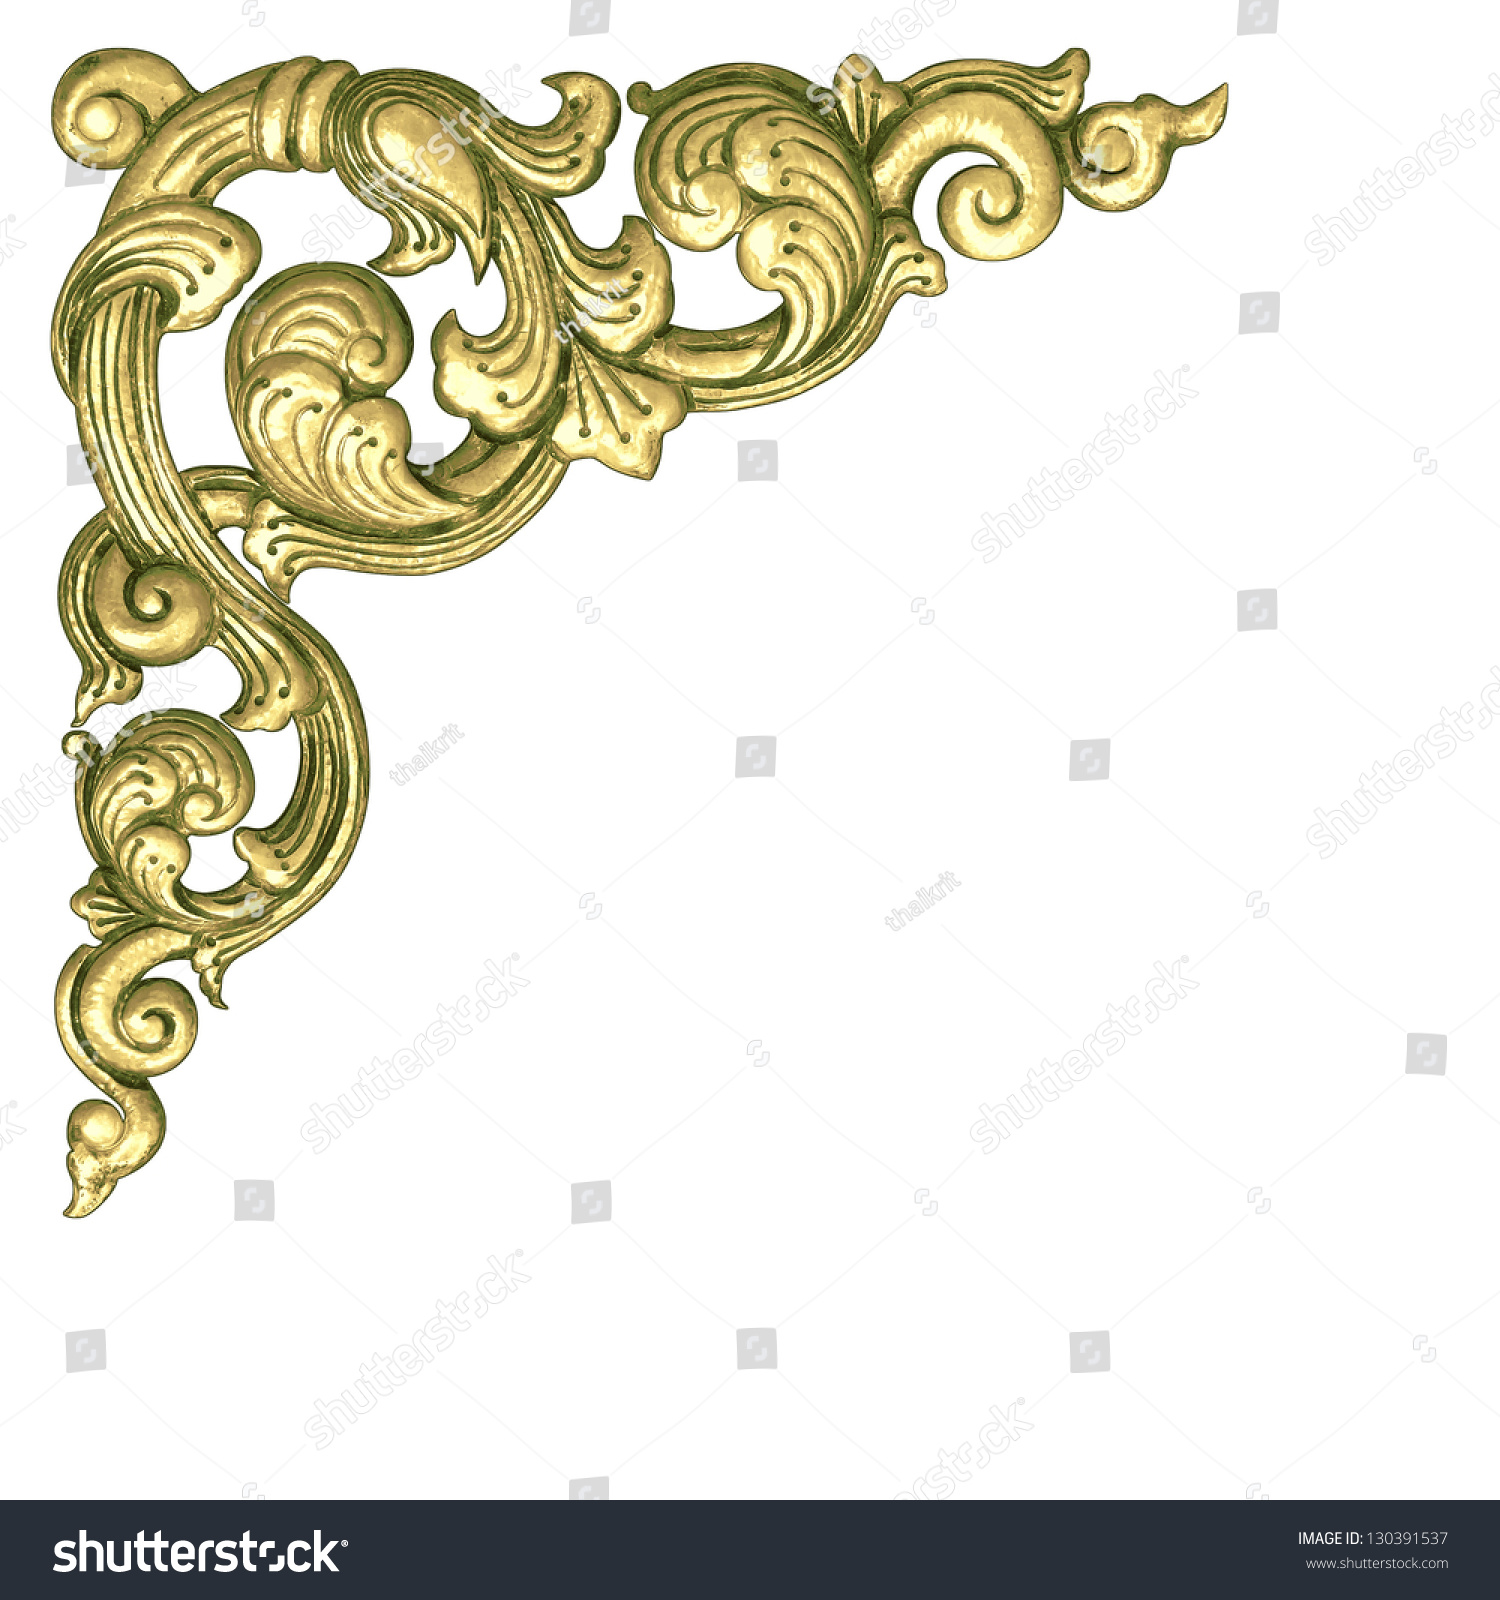 gold flower frame border stock photo 130391537 shutterstock